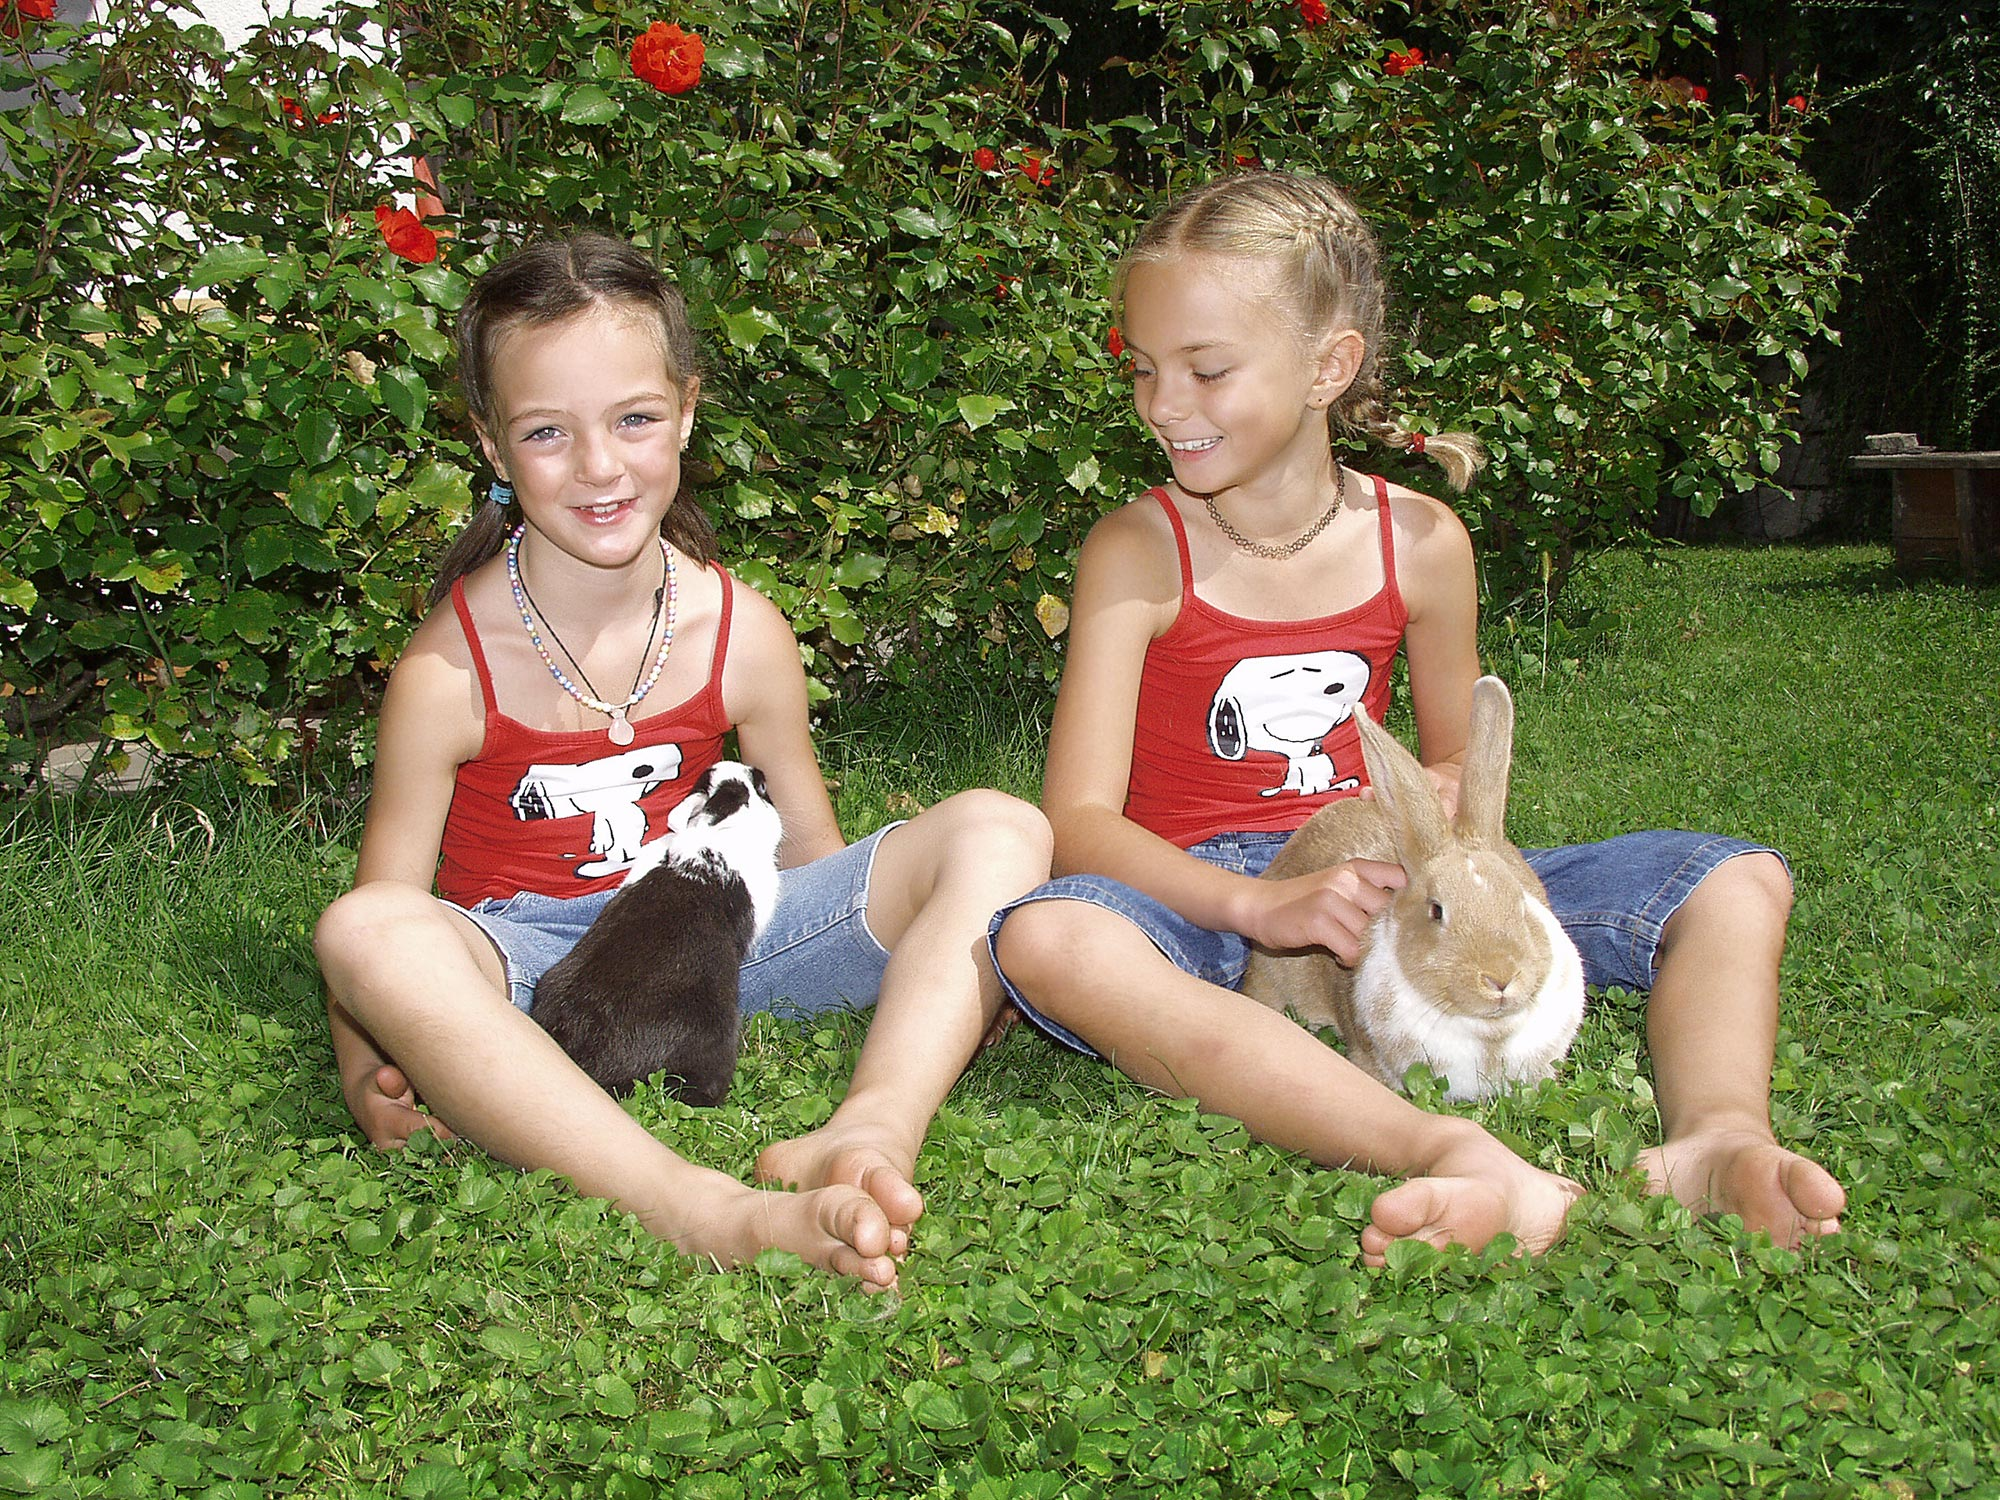 Children playing with rabbits